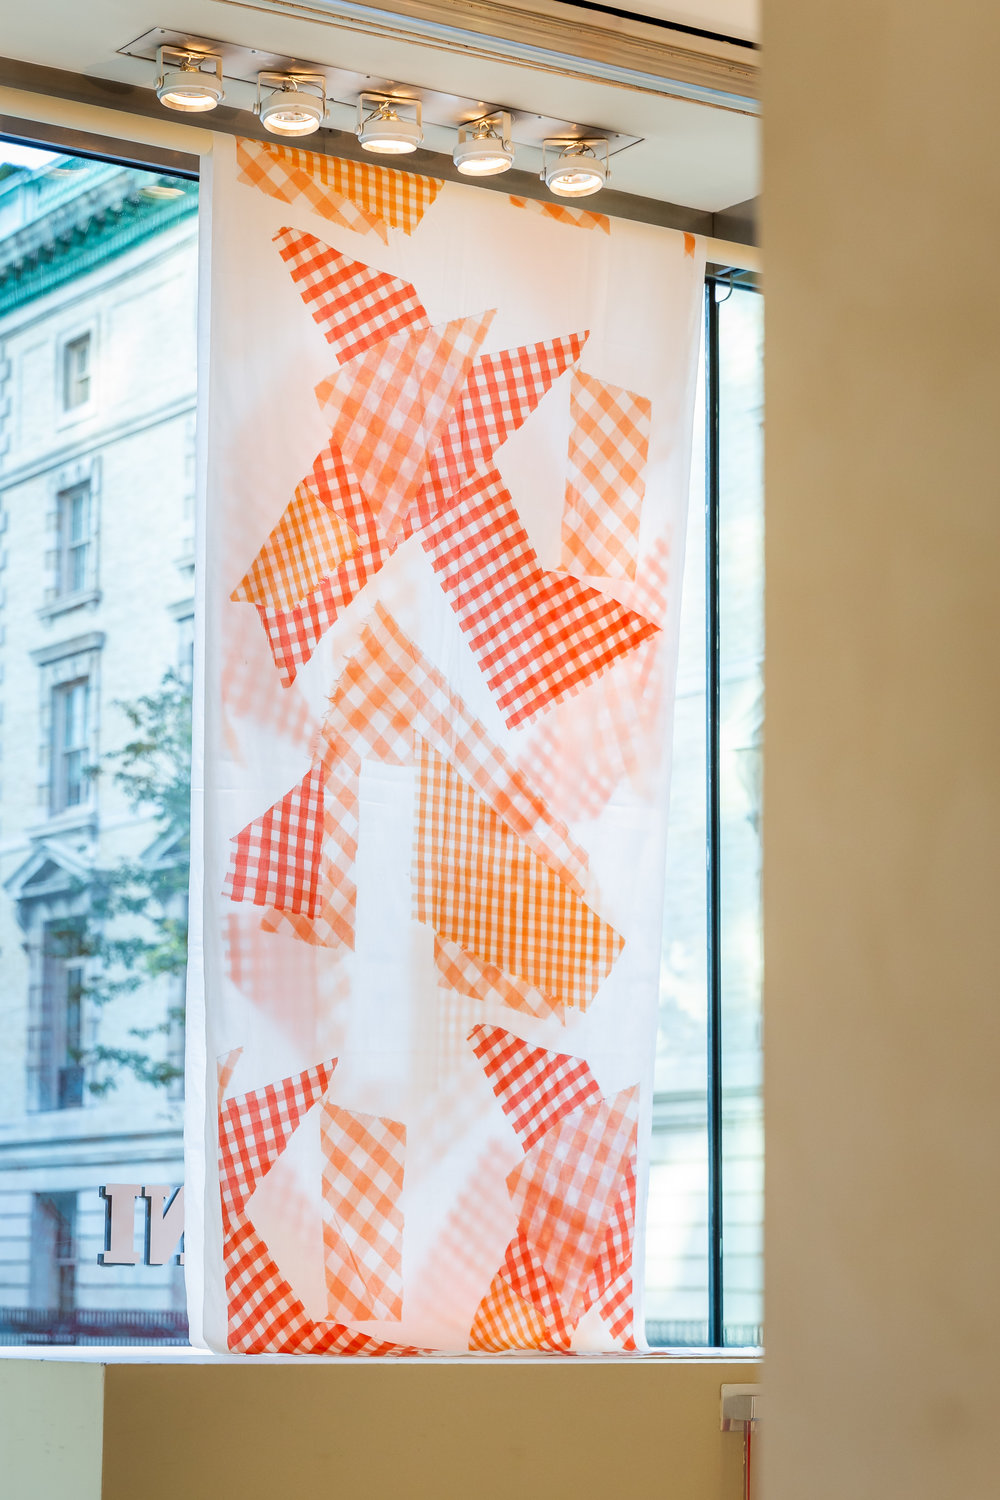 "Cheryl Donegan, Banner (Orange Gingham), cotton cloth with digital print, 42"" x 114 "", 2015"